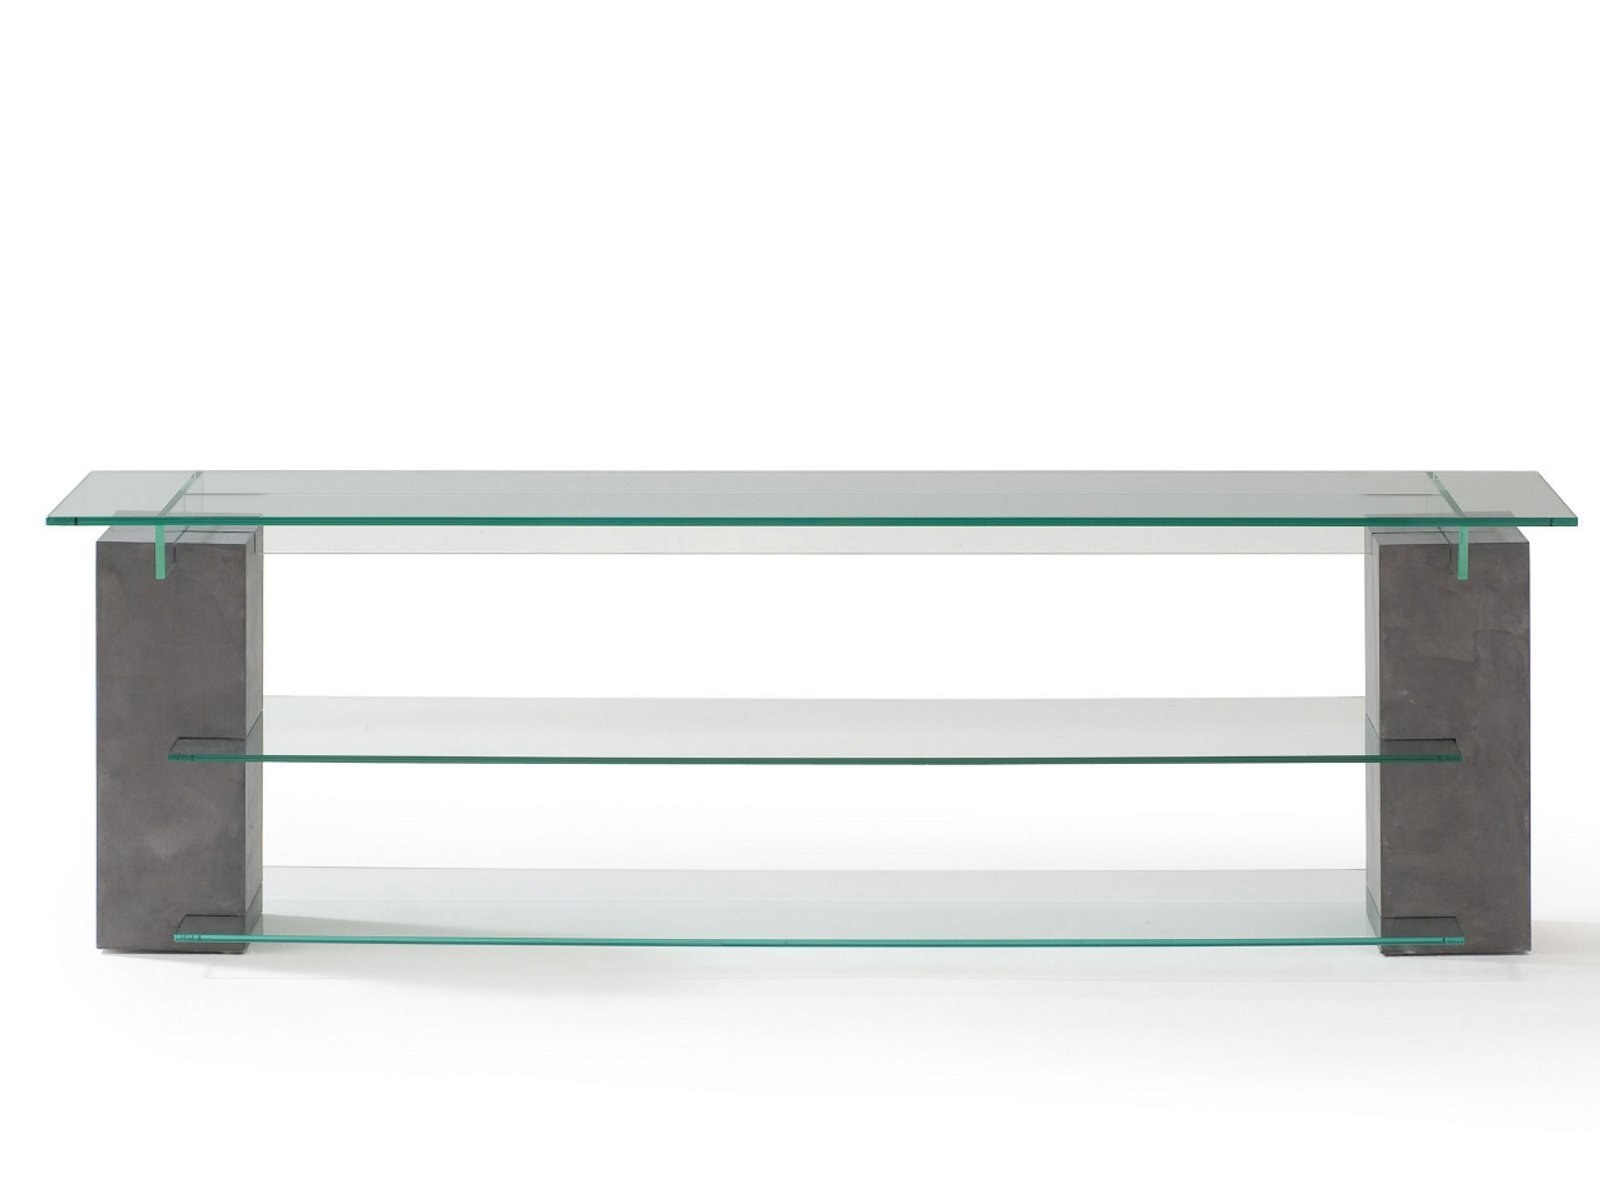 Meuble tv en verre tenere collection les contemporains by roche bobois - Meuble tv roche bobois ...